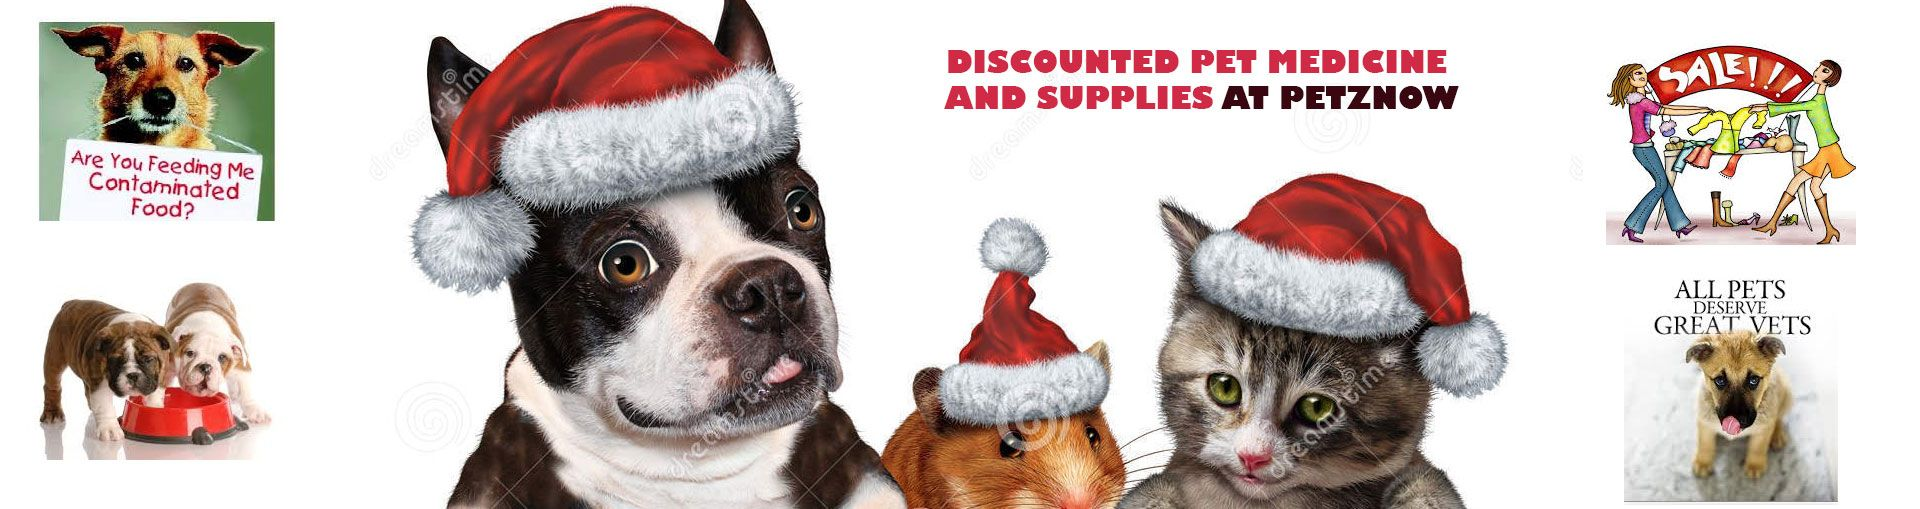 Choose from a wide range of pet clothing at an attractive price at PetzNow. Be it for you cute little dog or cat, we have pet clothing for every pet to dress them up the way you want. Browse through our featured collection of pet clothing at http://petznow.com/ and give your pet a nice makeover!